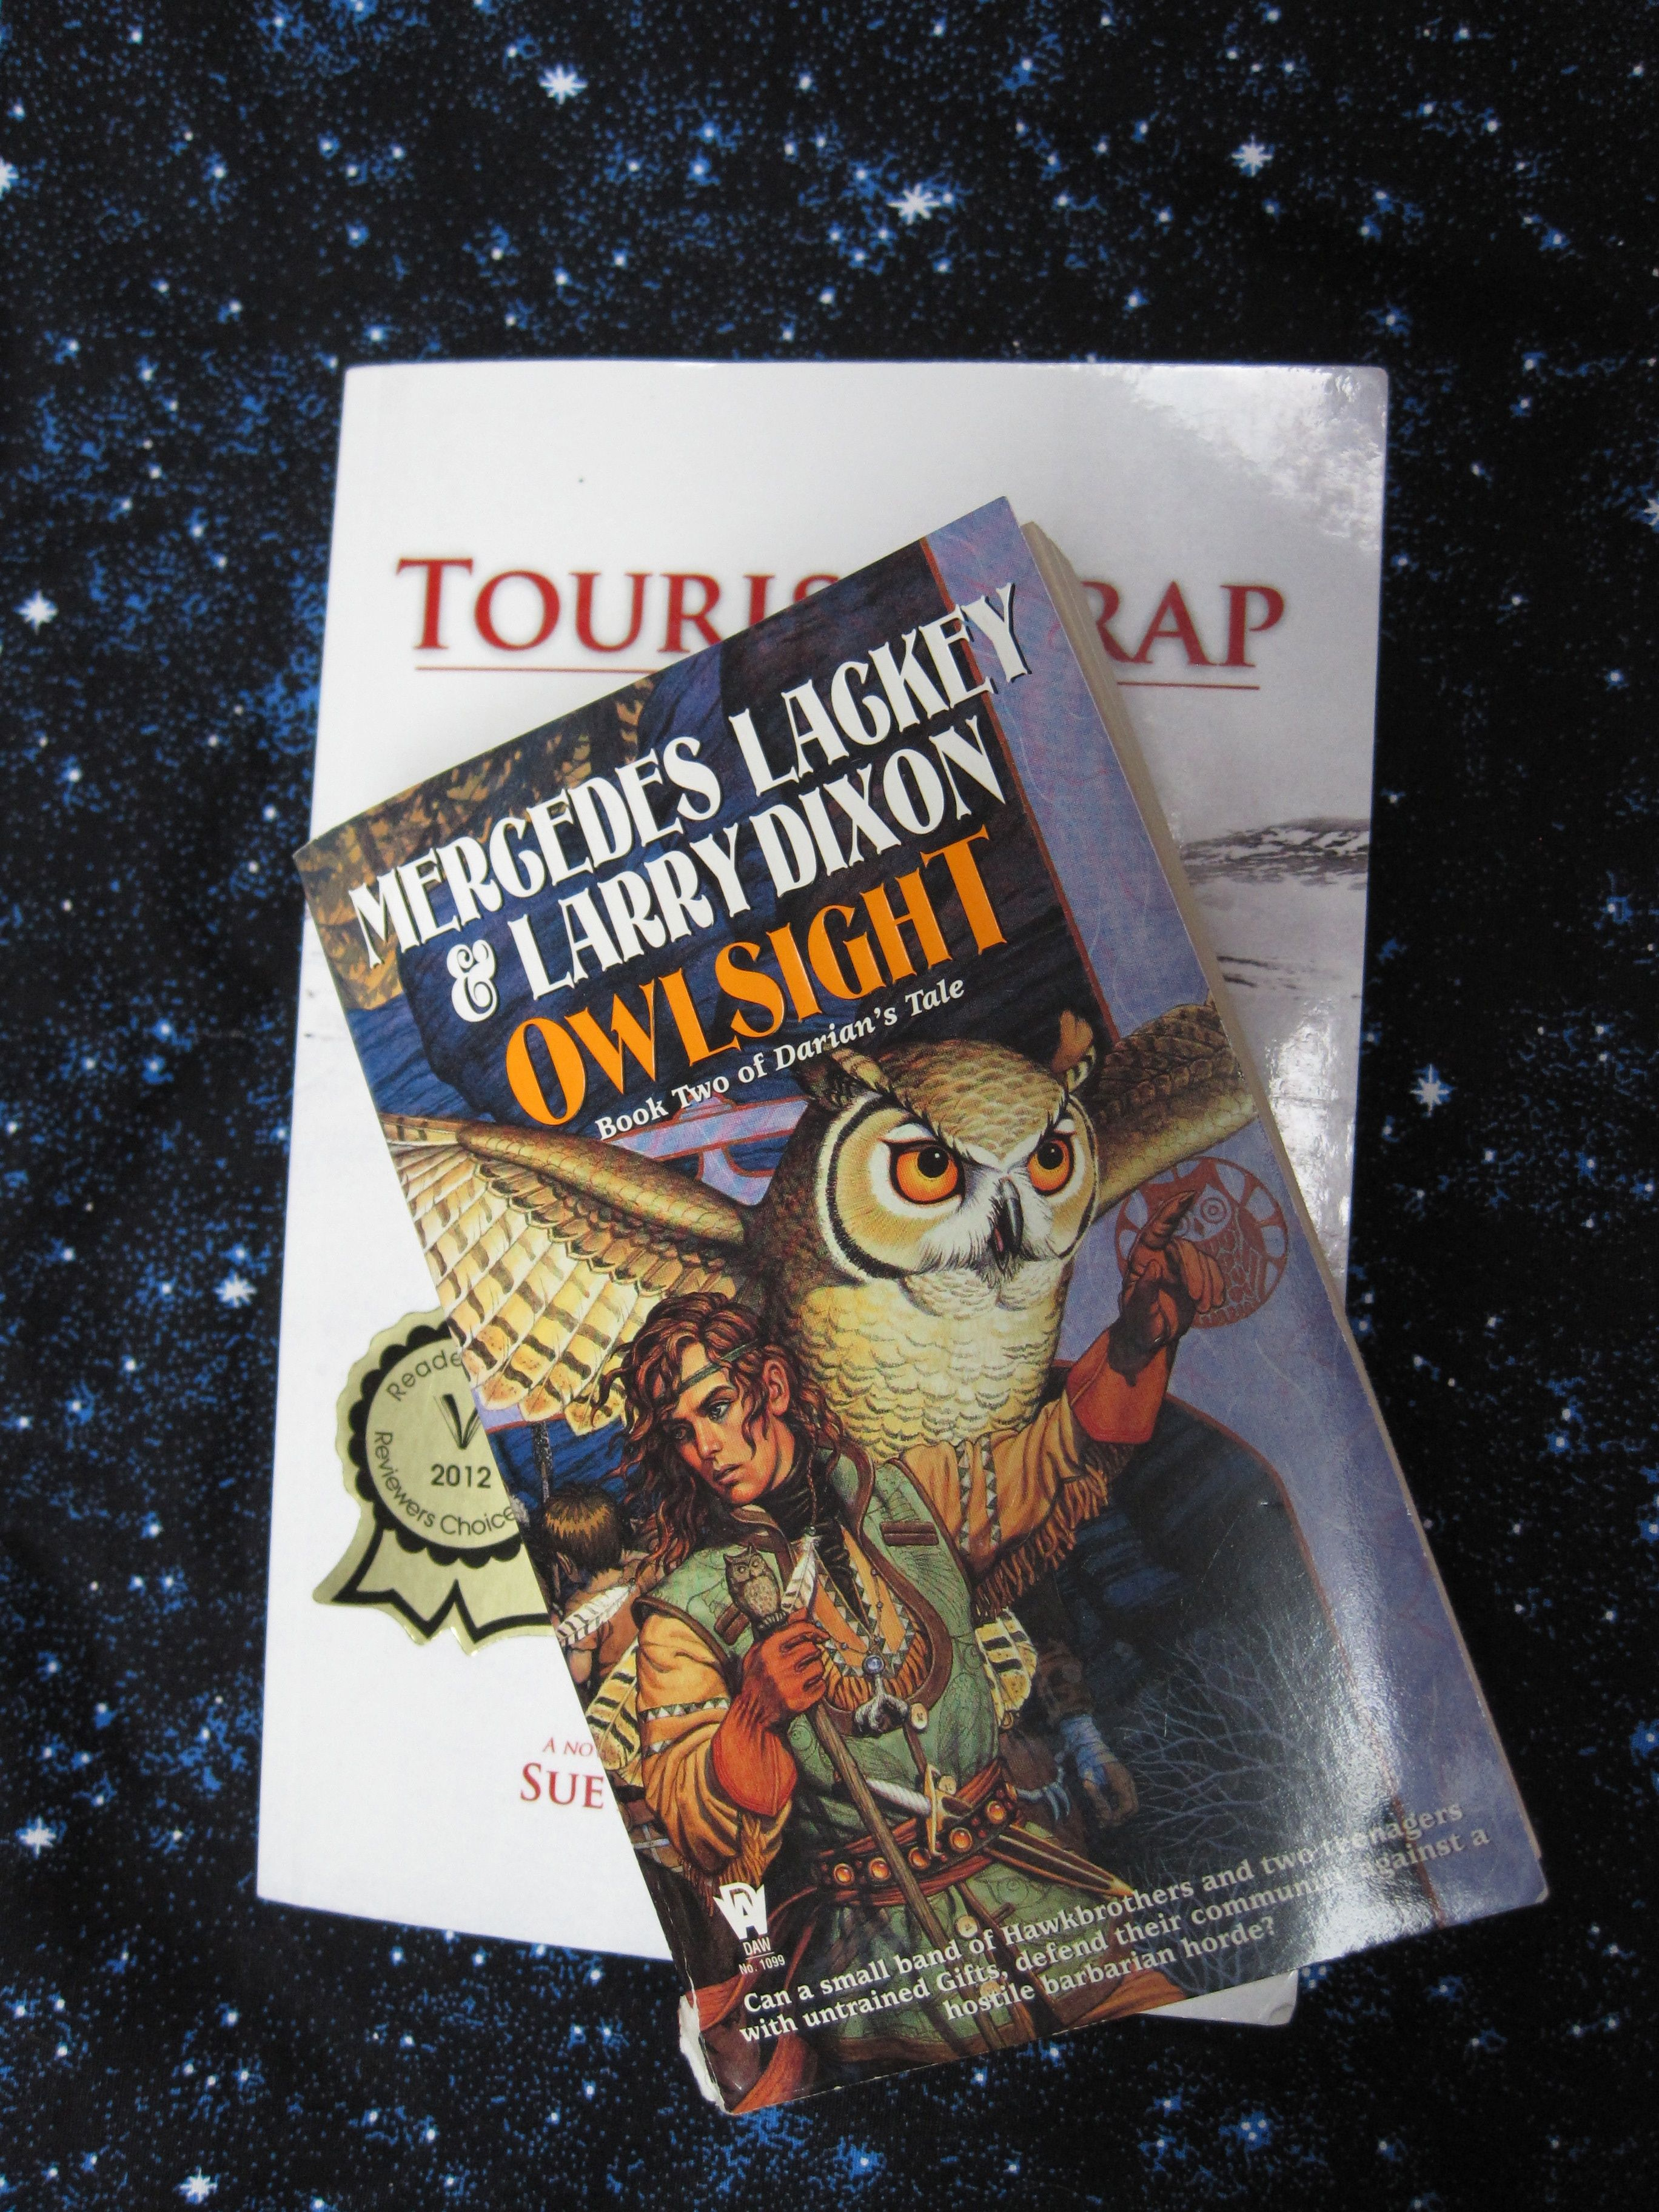 The first 6 quotes are from Owlsight, by Mercedes Lackey ...